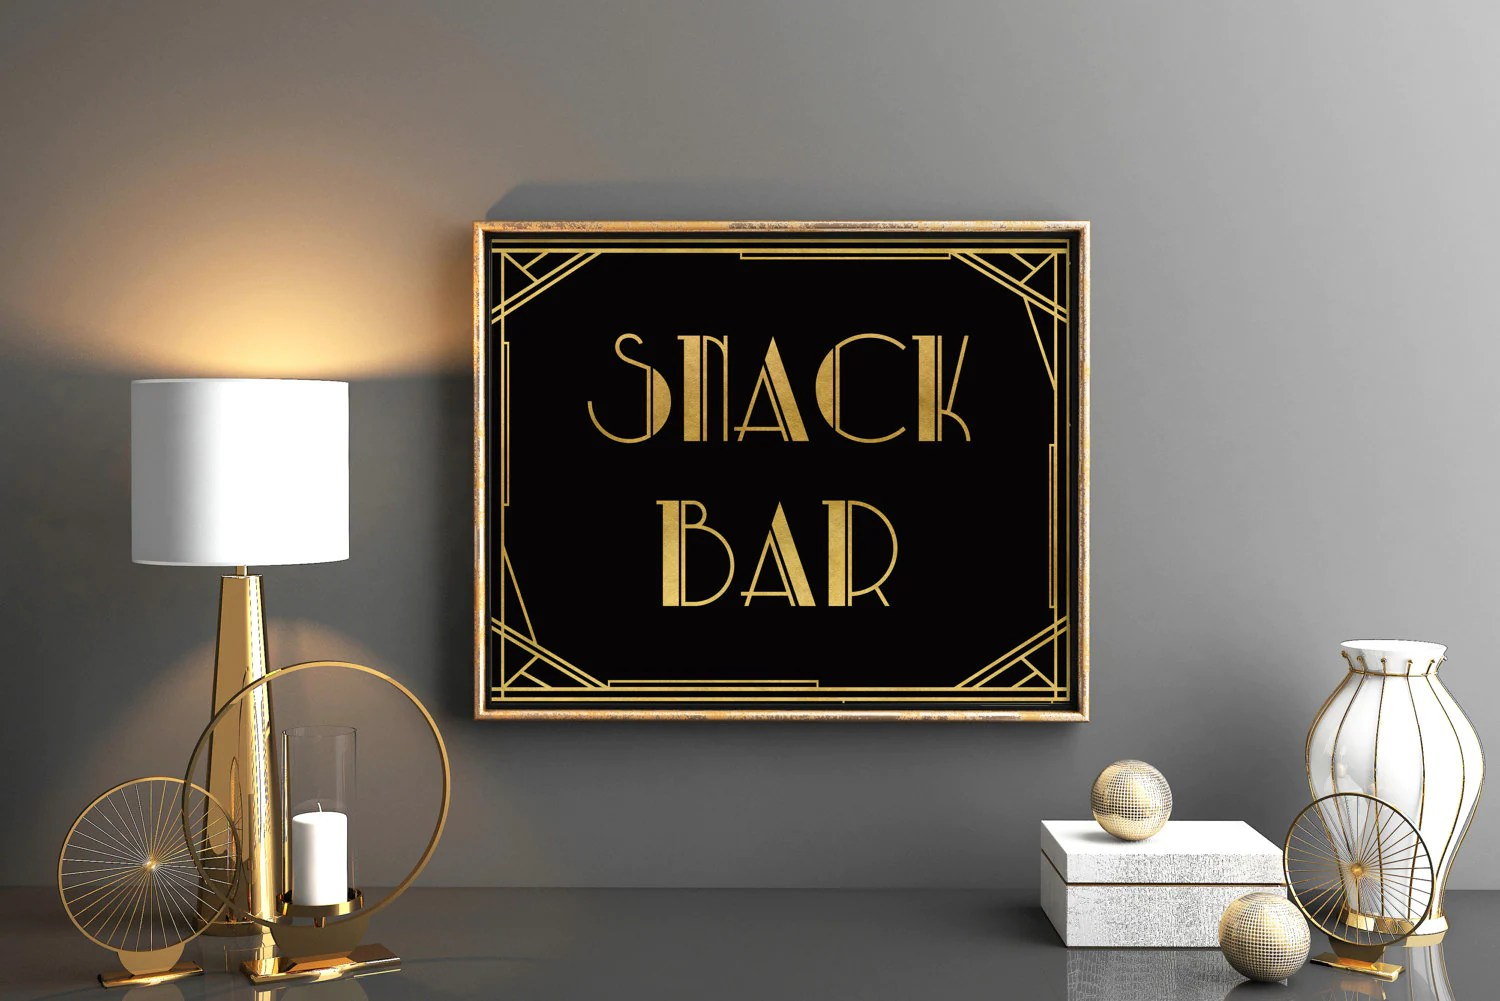 Deco Snack Great Gatsby Party Sign Snack Bar Art Deco Decor Sign Roaring Twenties Party Sign Snack Bar Prohibitions Party Great Gatsby Decorations